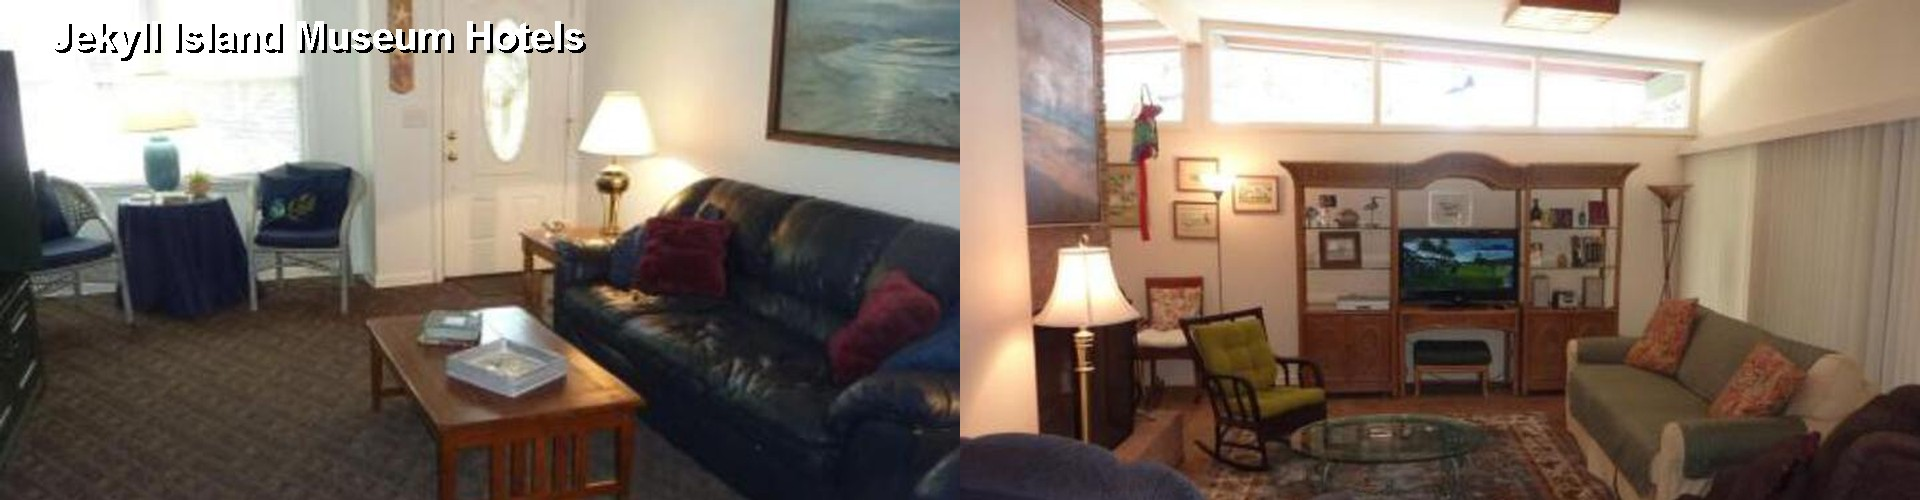 5 Best Hotels near Jekyll Island Museum